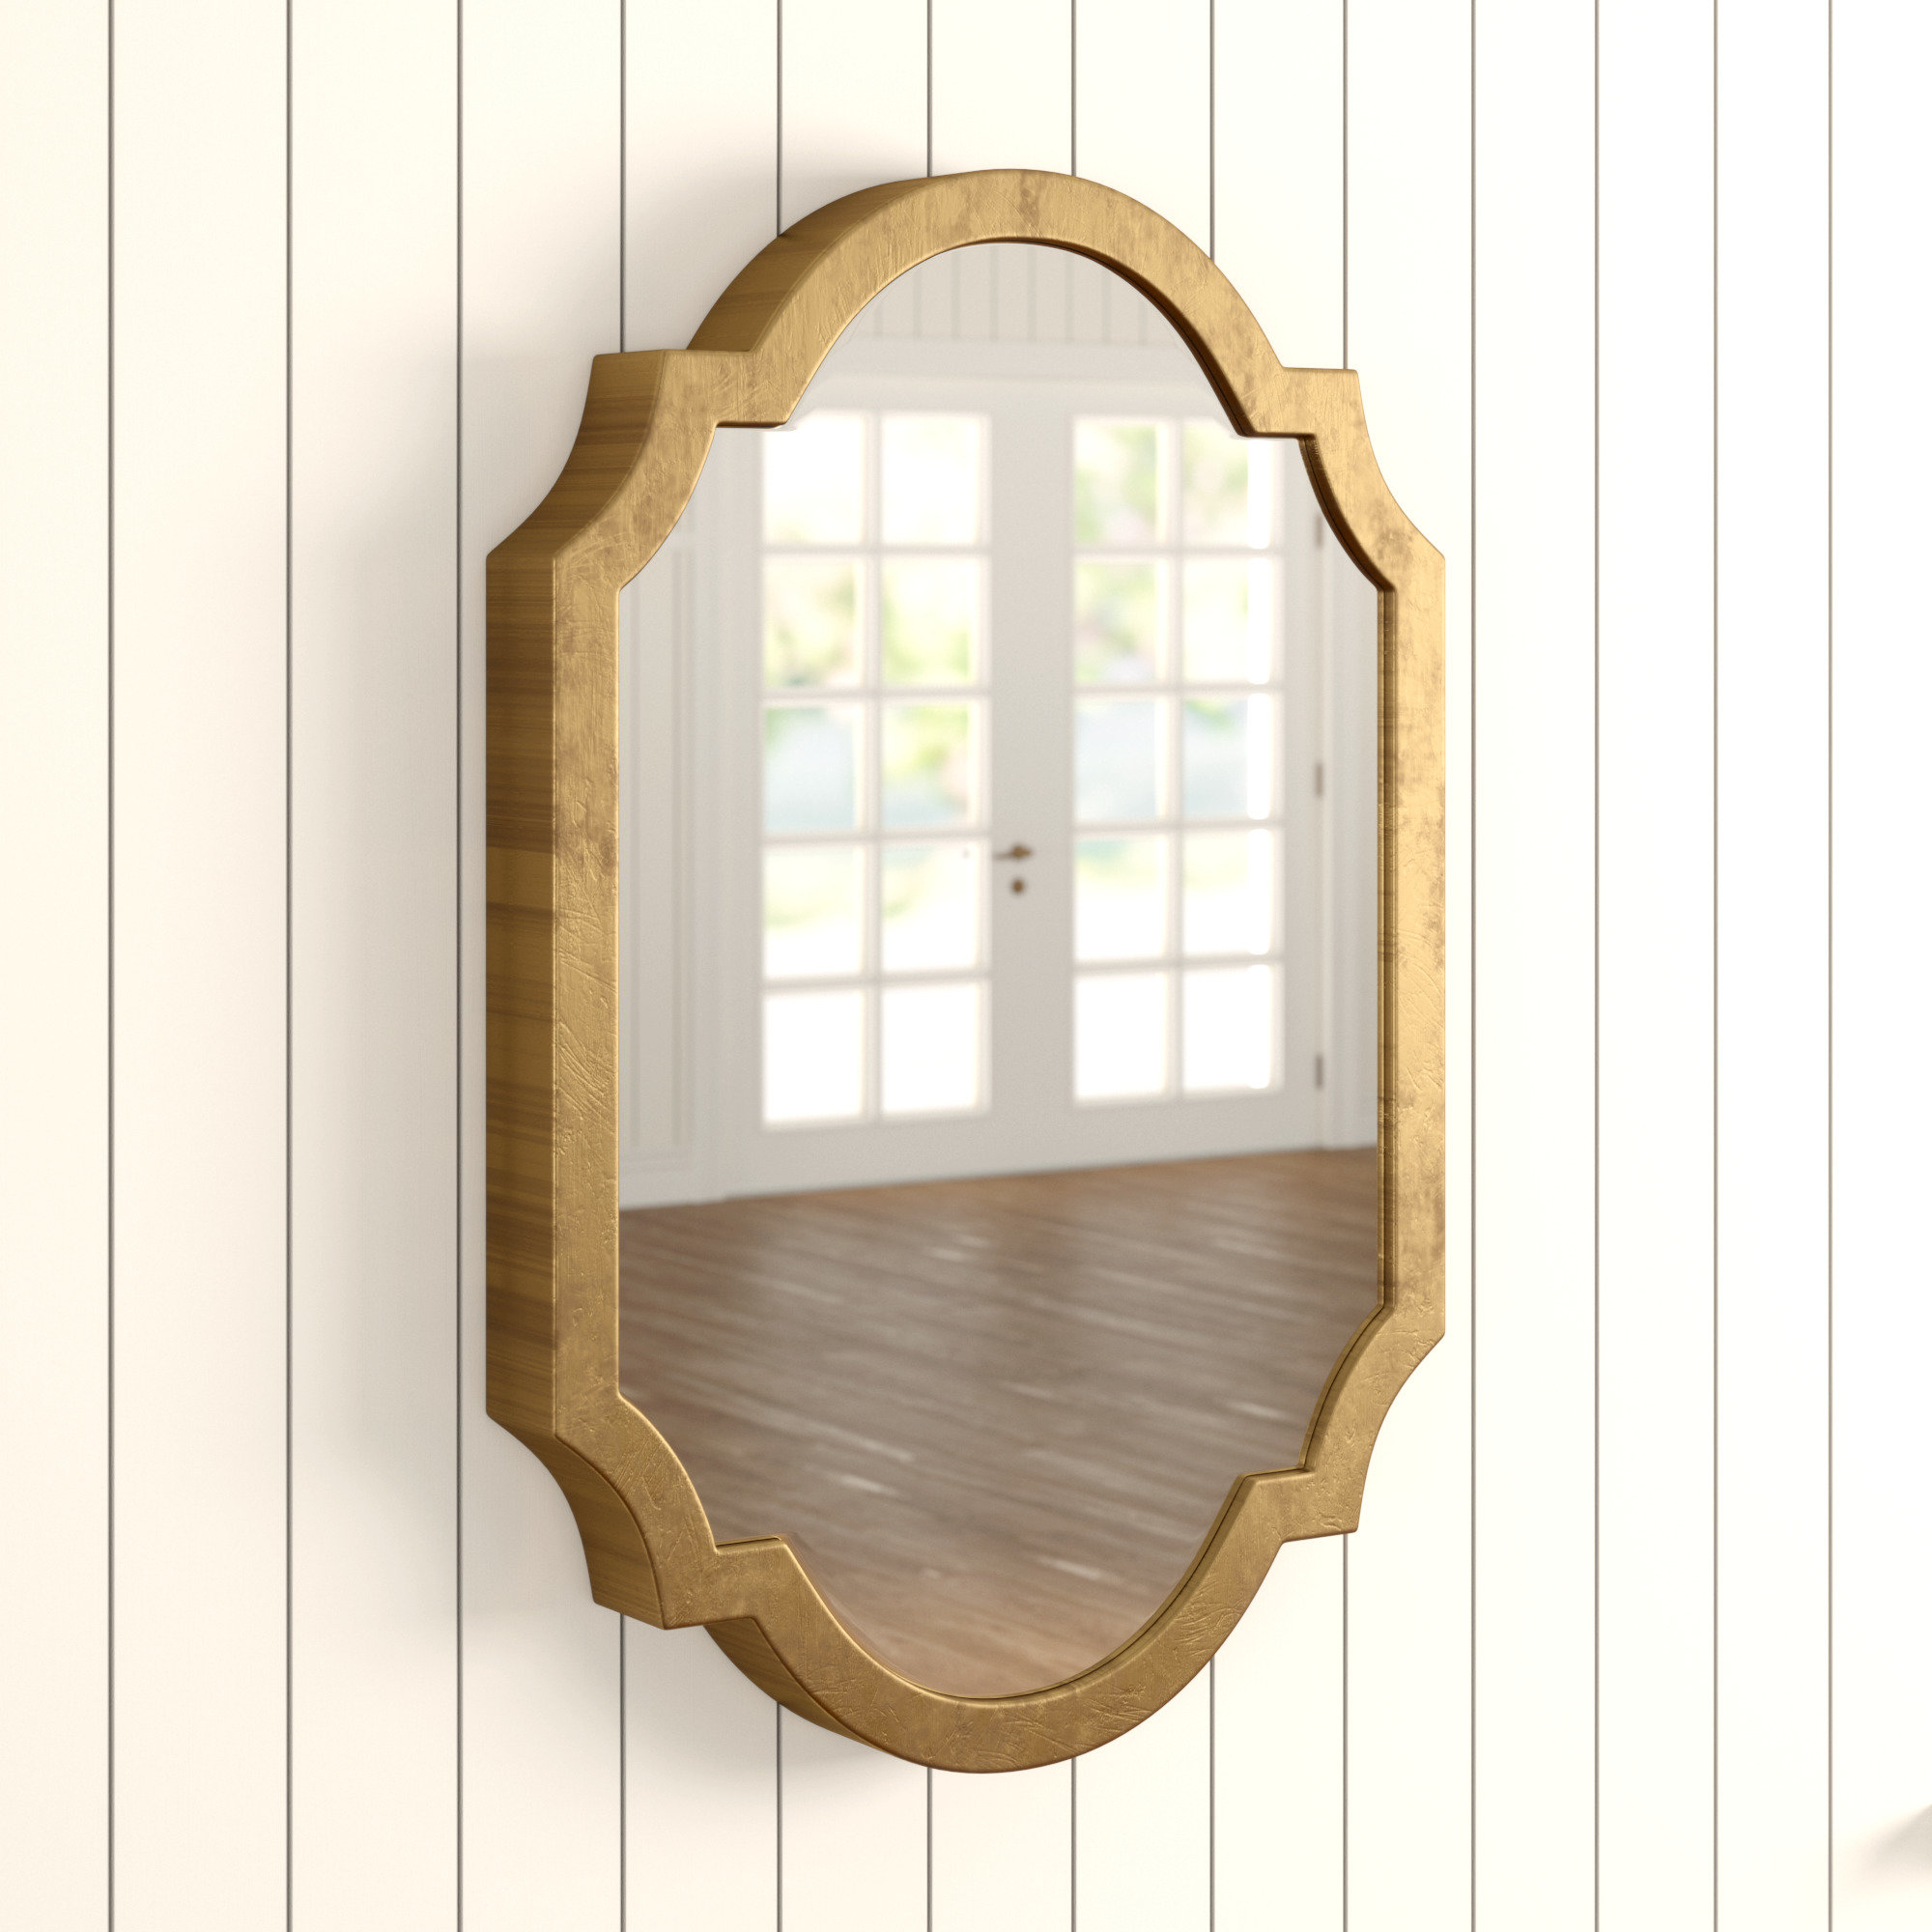 Guidinha Modern & Contemporary Accent Mirrors For Most Up To Date Astrid Modern & Contemporary Accent Mirror (View 8 of 20)